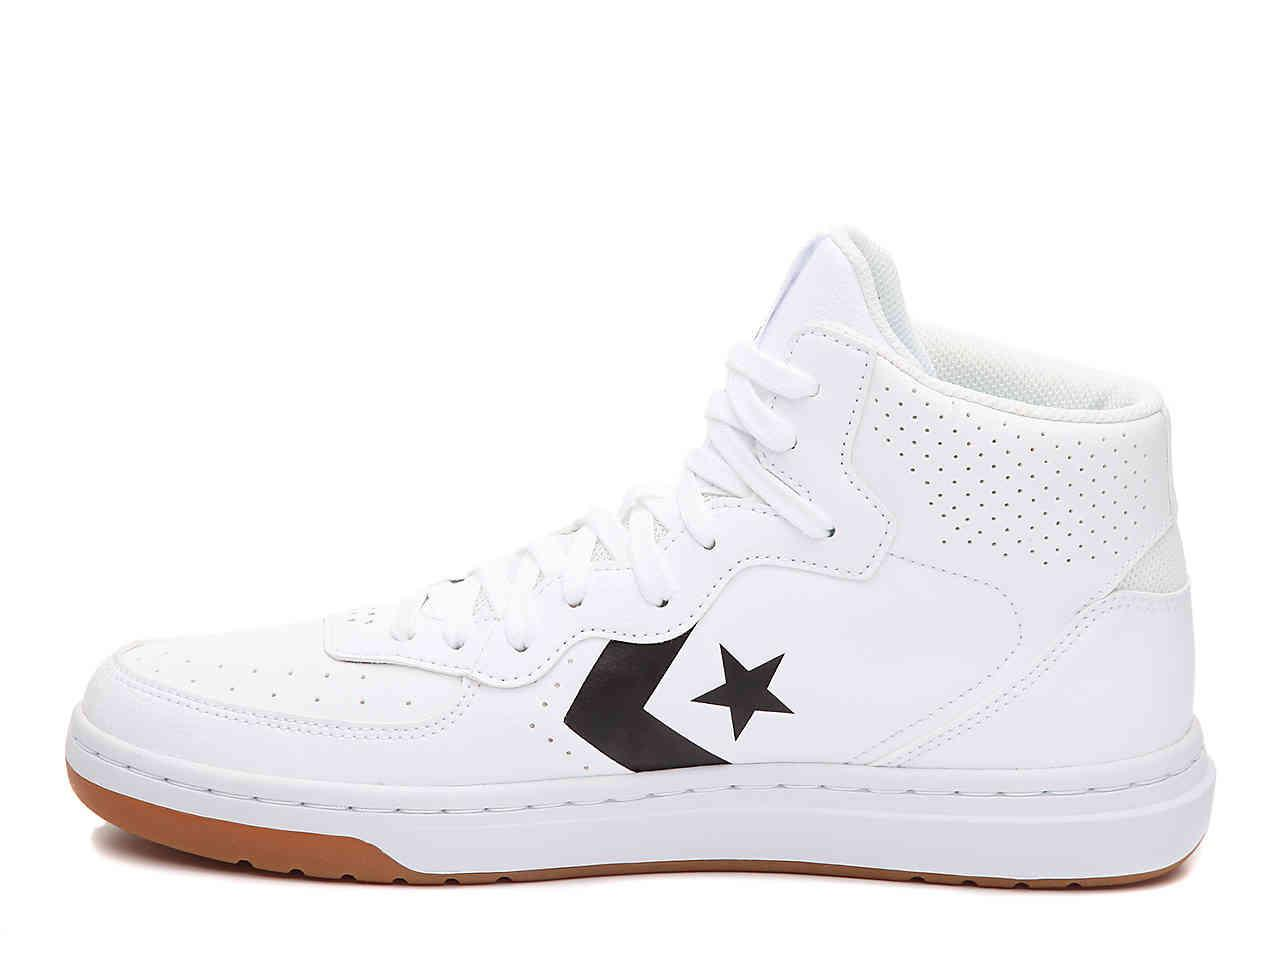 Converse Leather Rival High-top Sneaker